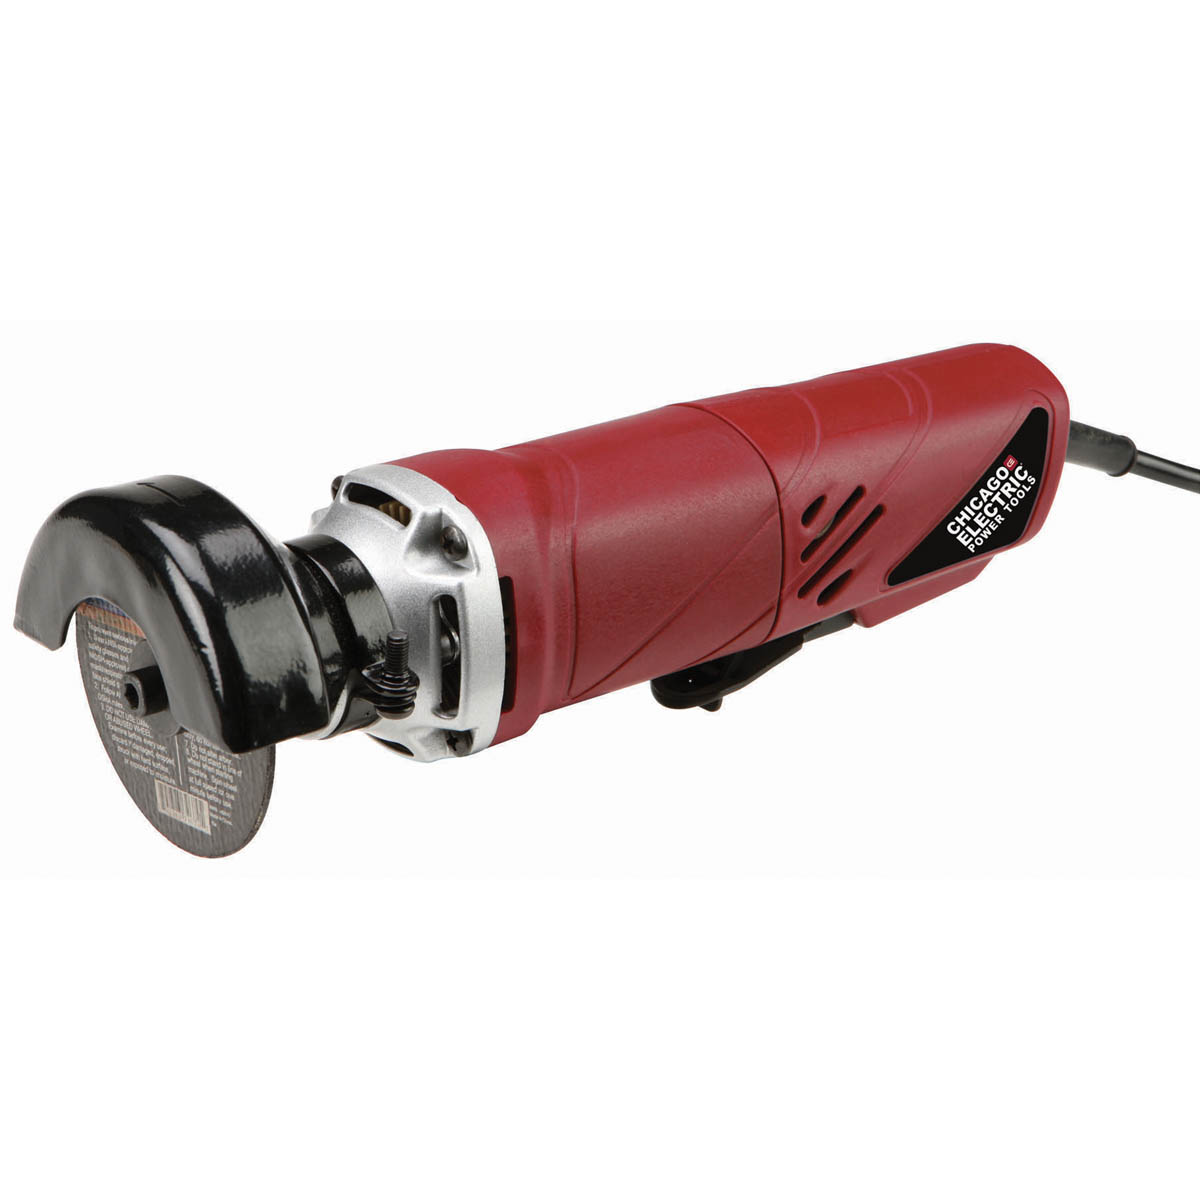 Electric Hand Grinder For Metal ~ In heavy duty electric cut off tool